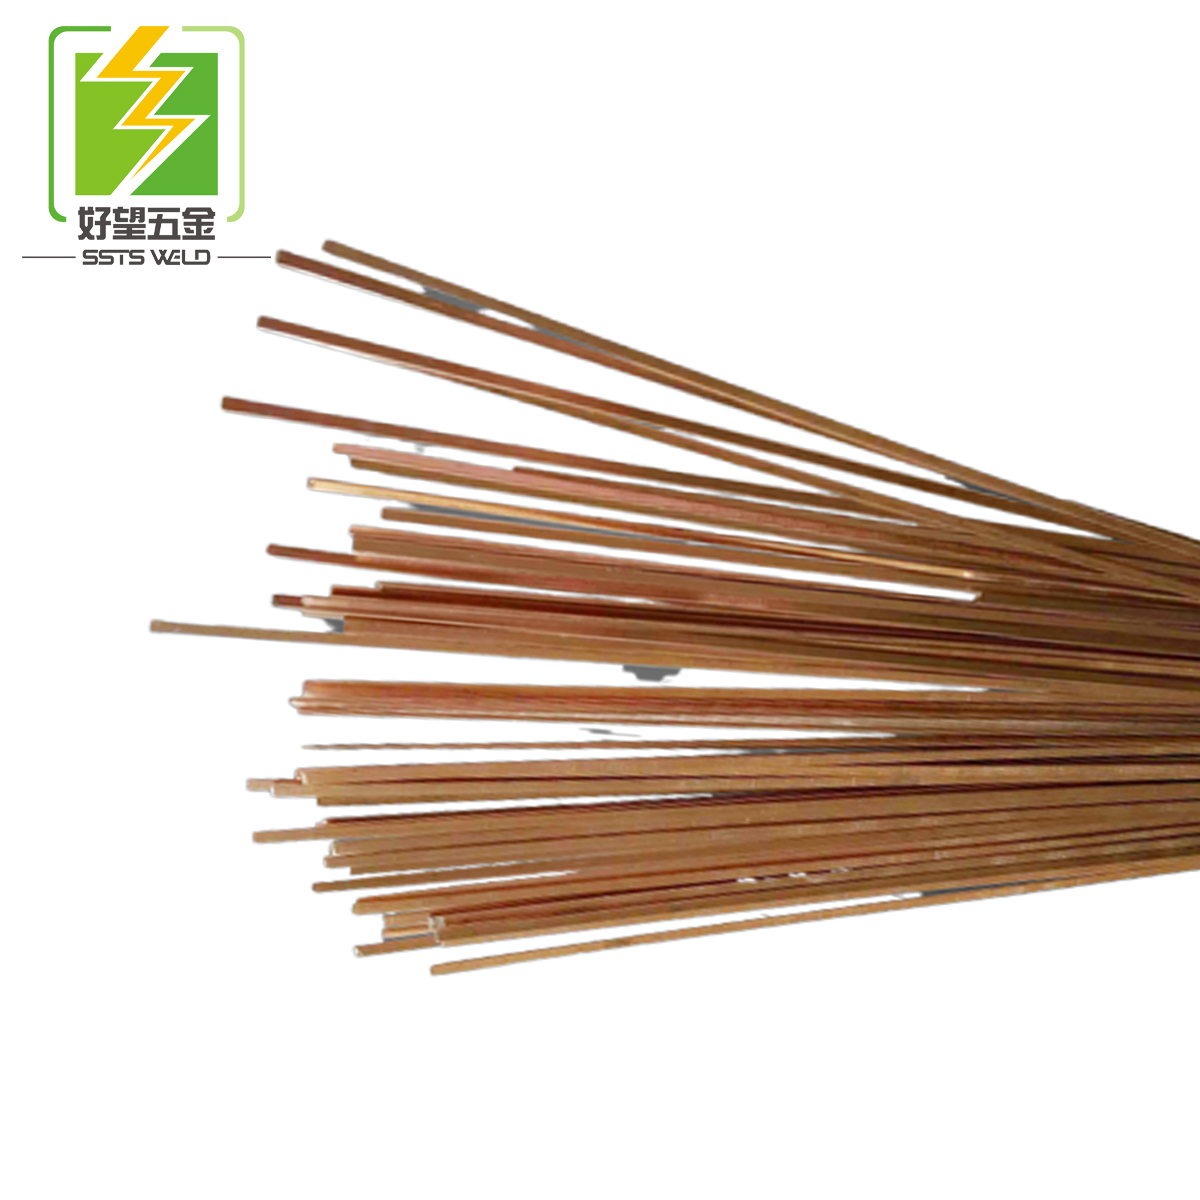 Bcup-3 5%silver Phos Copper brazing alloy welding rod